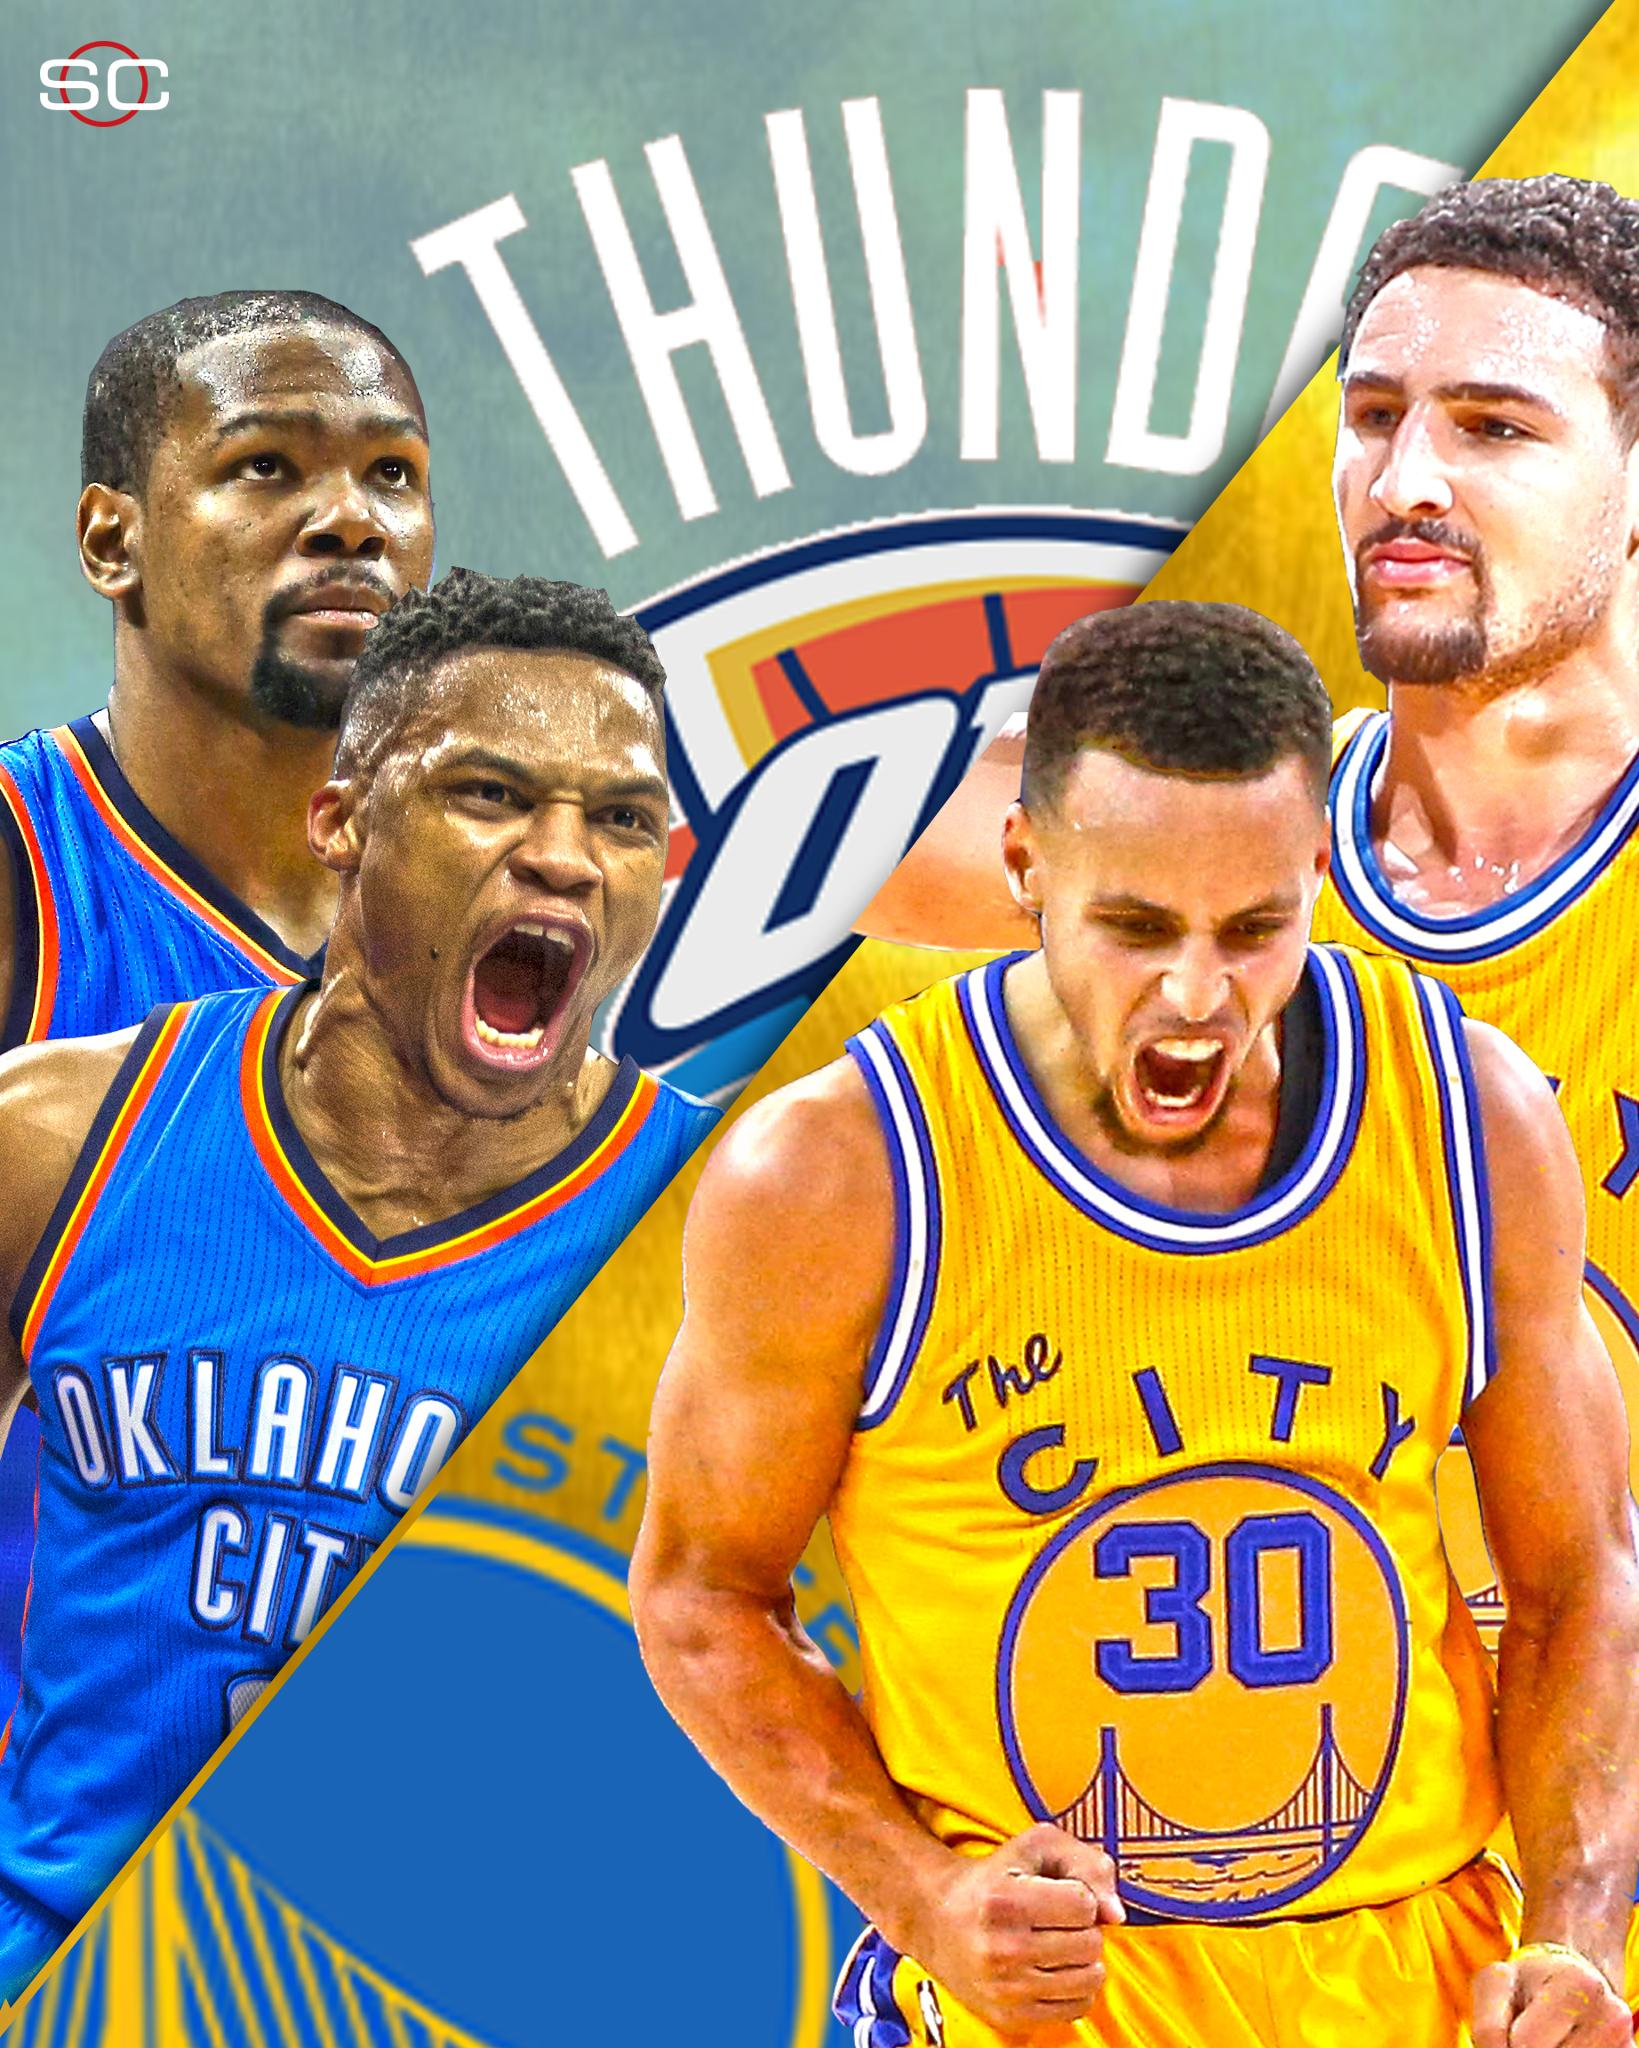 Thunder vs Warriors.  Russ & KD vs Steph & Klay.  The Western Conference Finals is set. https://t.co/iWBAdzGGCE